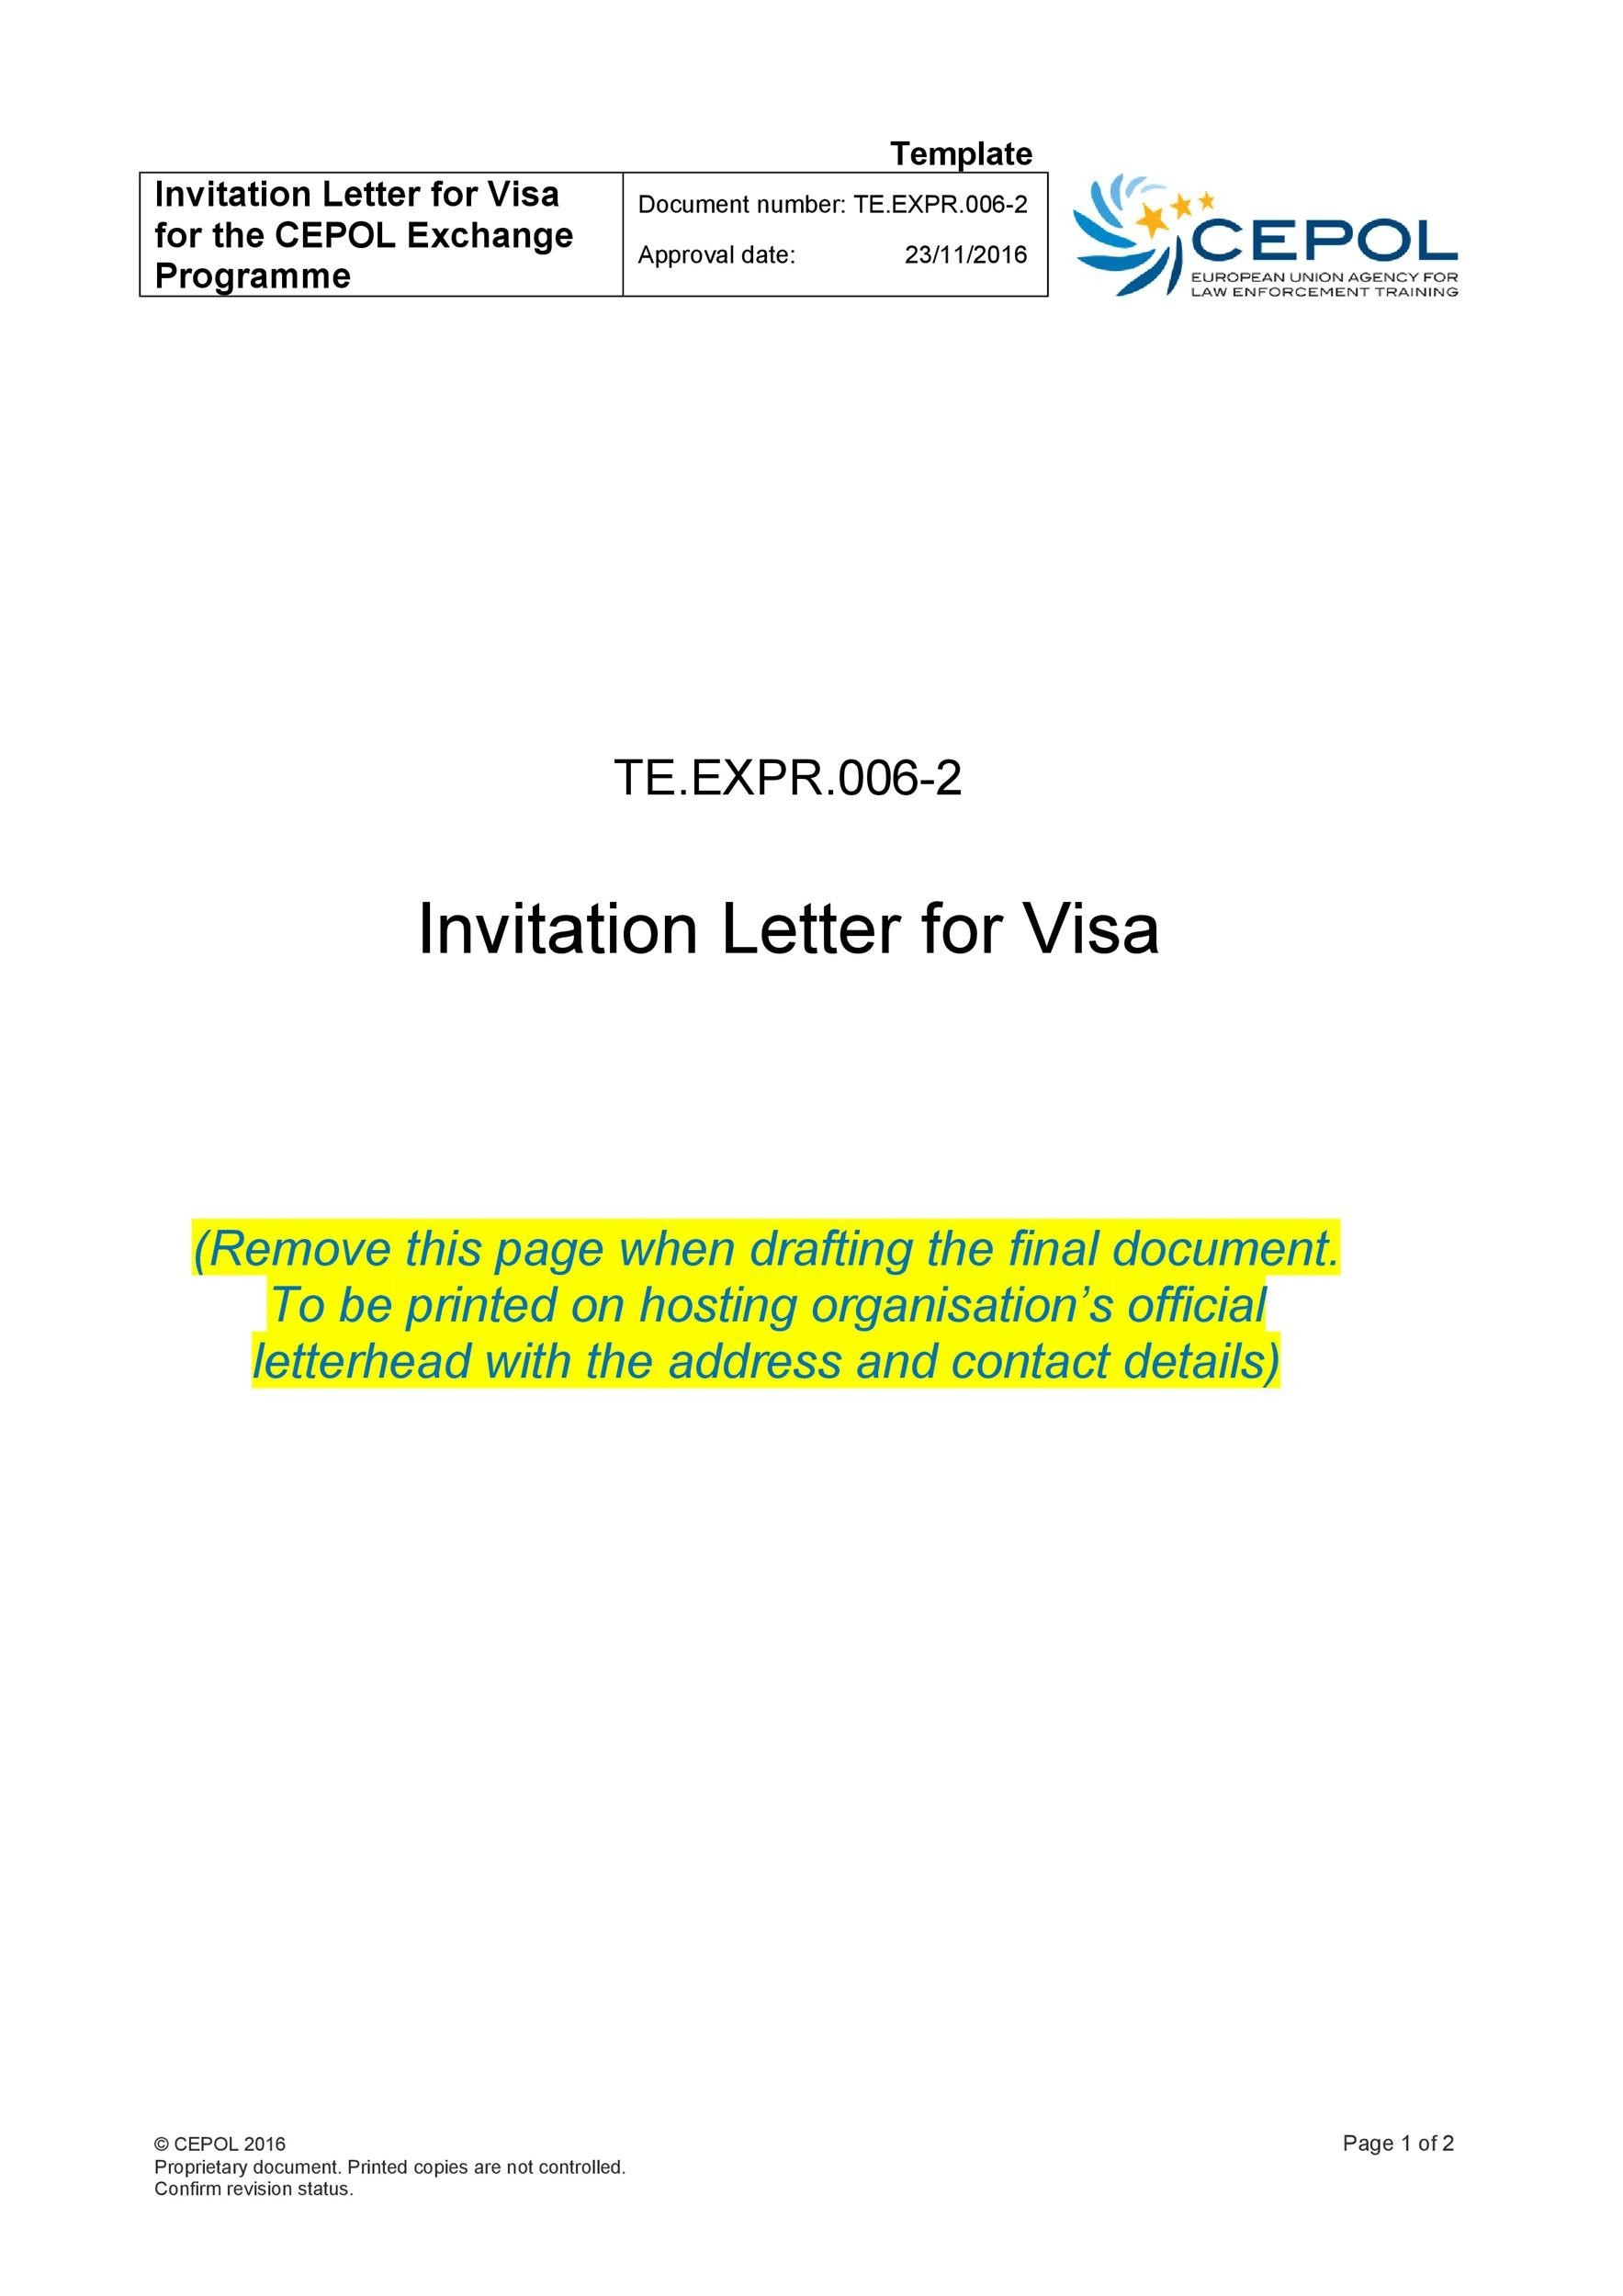 50 Best Invitation Letters (for Visa & General) ᐅ Template Lab